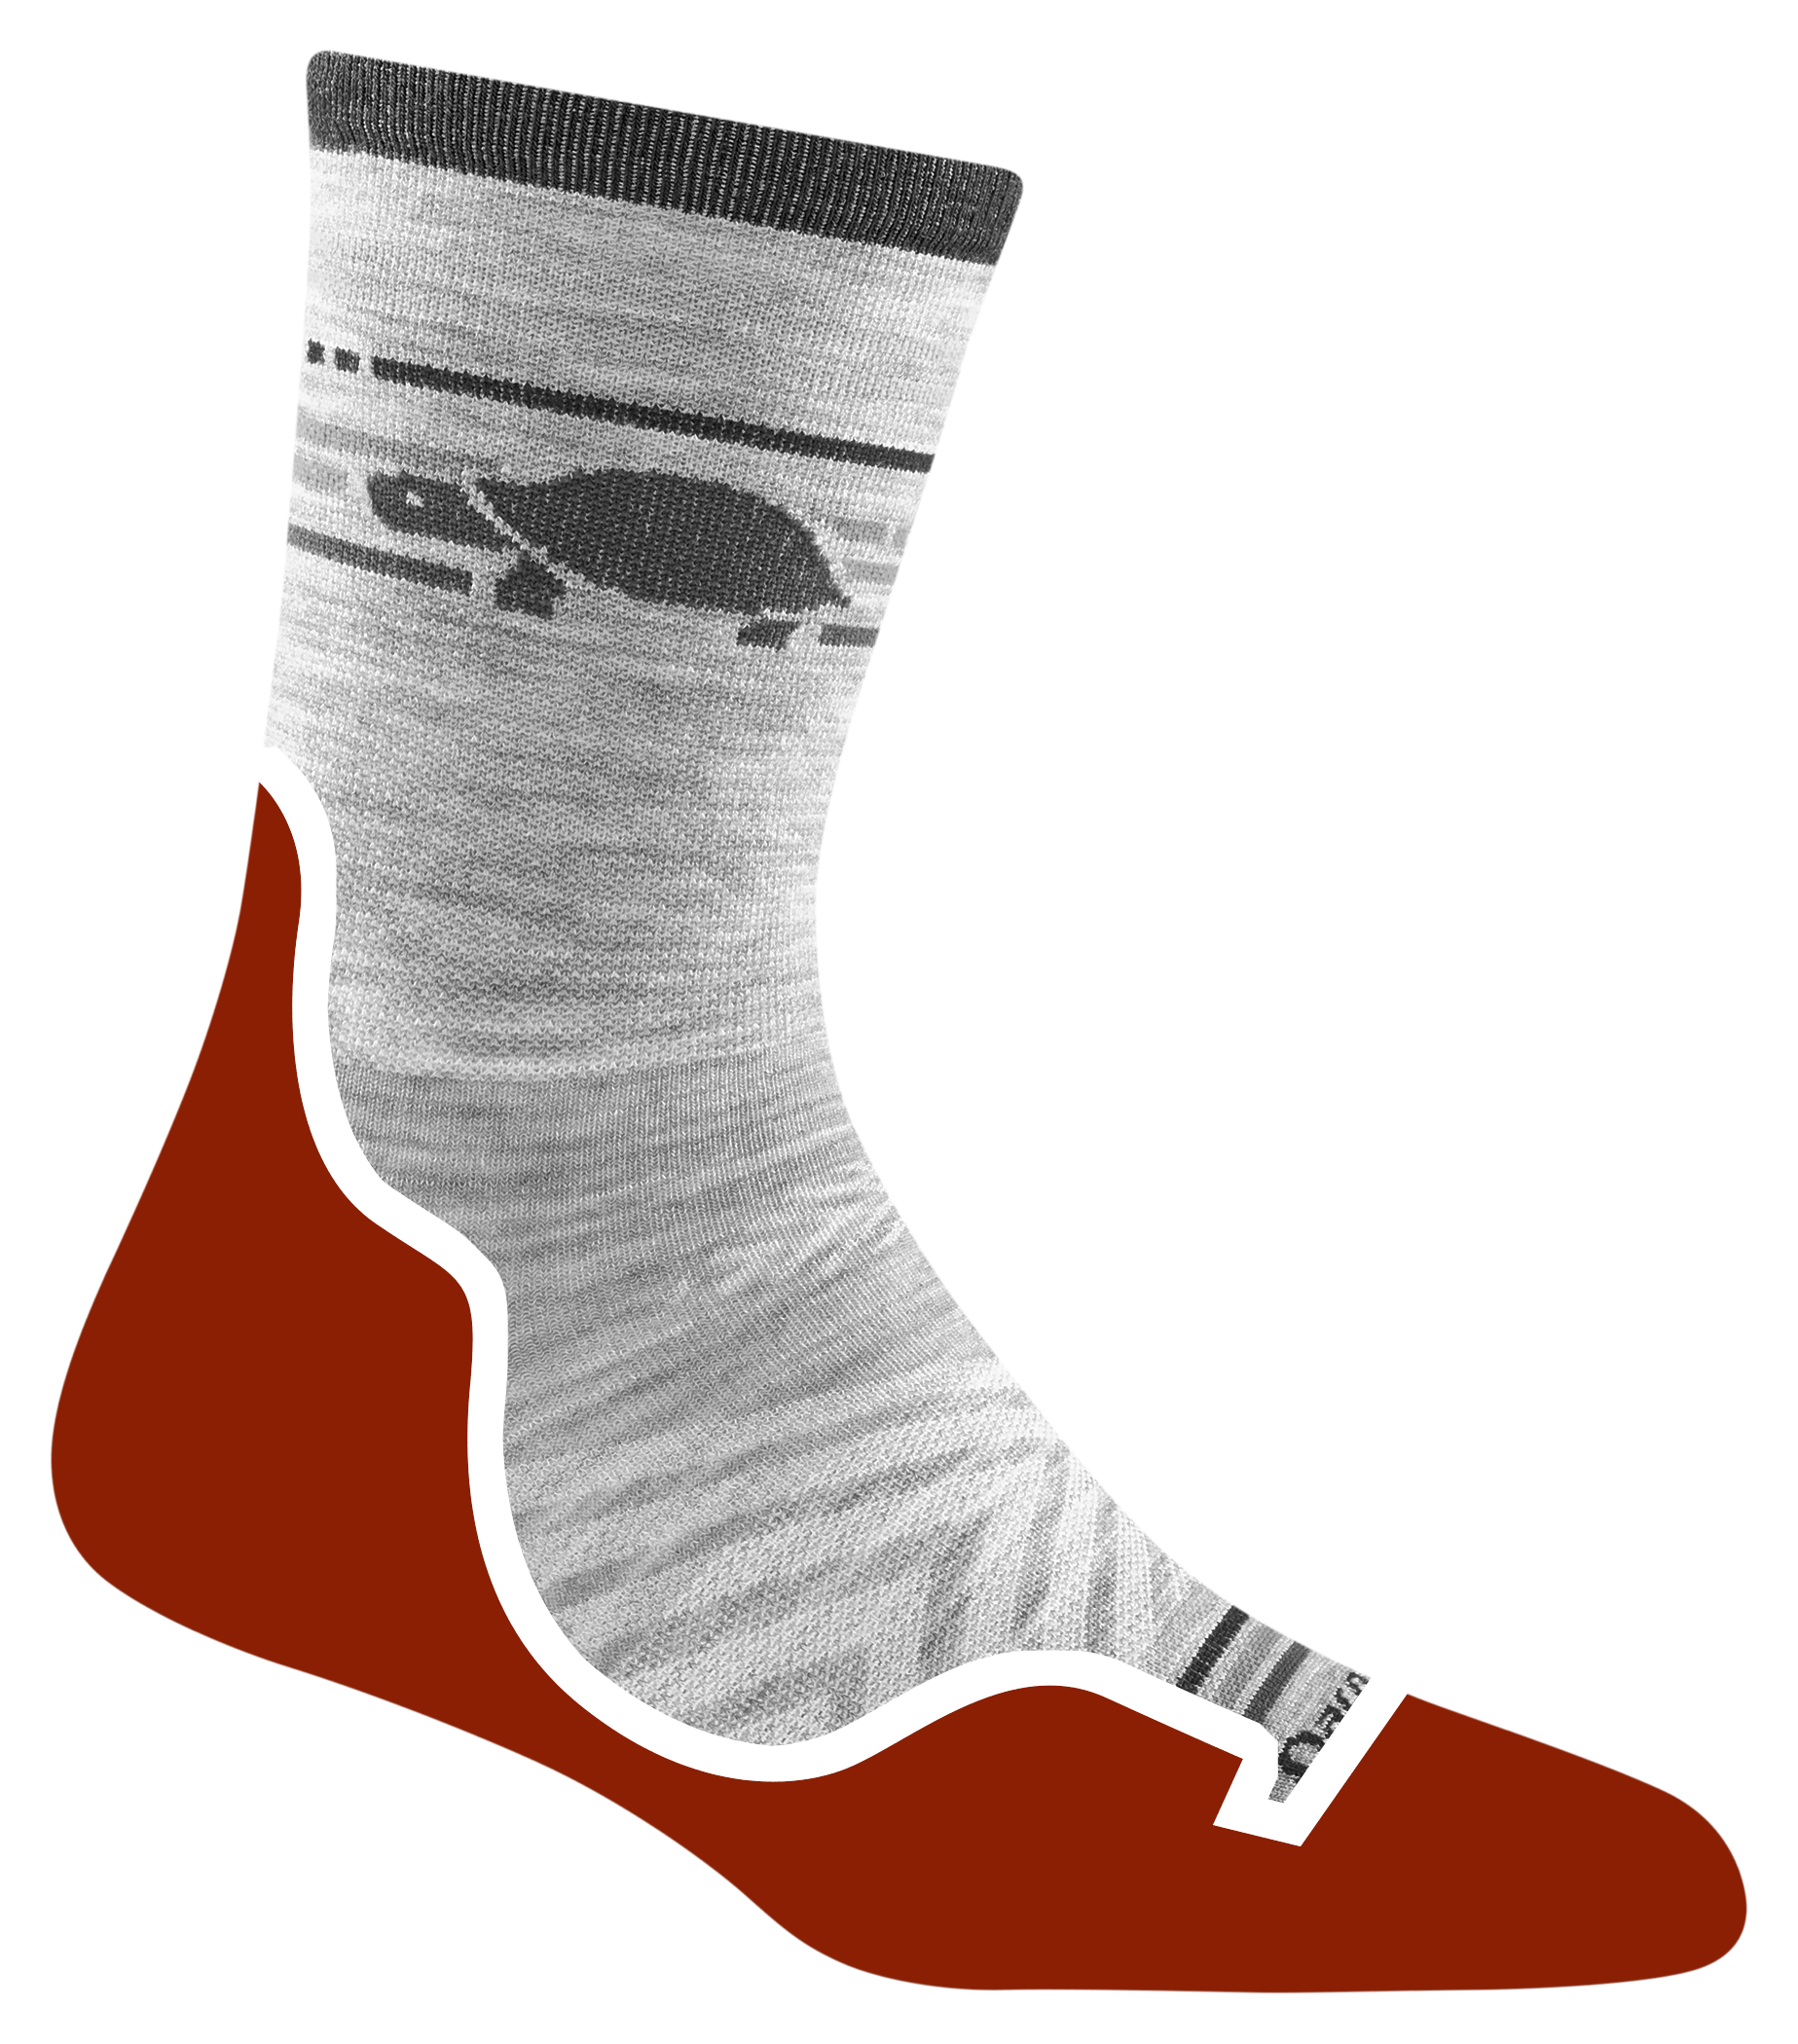 Cushion Location: Terry loop cushion isolated under the foot for rebound in these incredibly light running socks.. Cushion Weight: For the ultimate like-it's-not-even-there fit and feel, ultra-lightweight yarns give our running socks the lowest in-shoe profile.